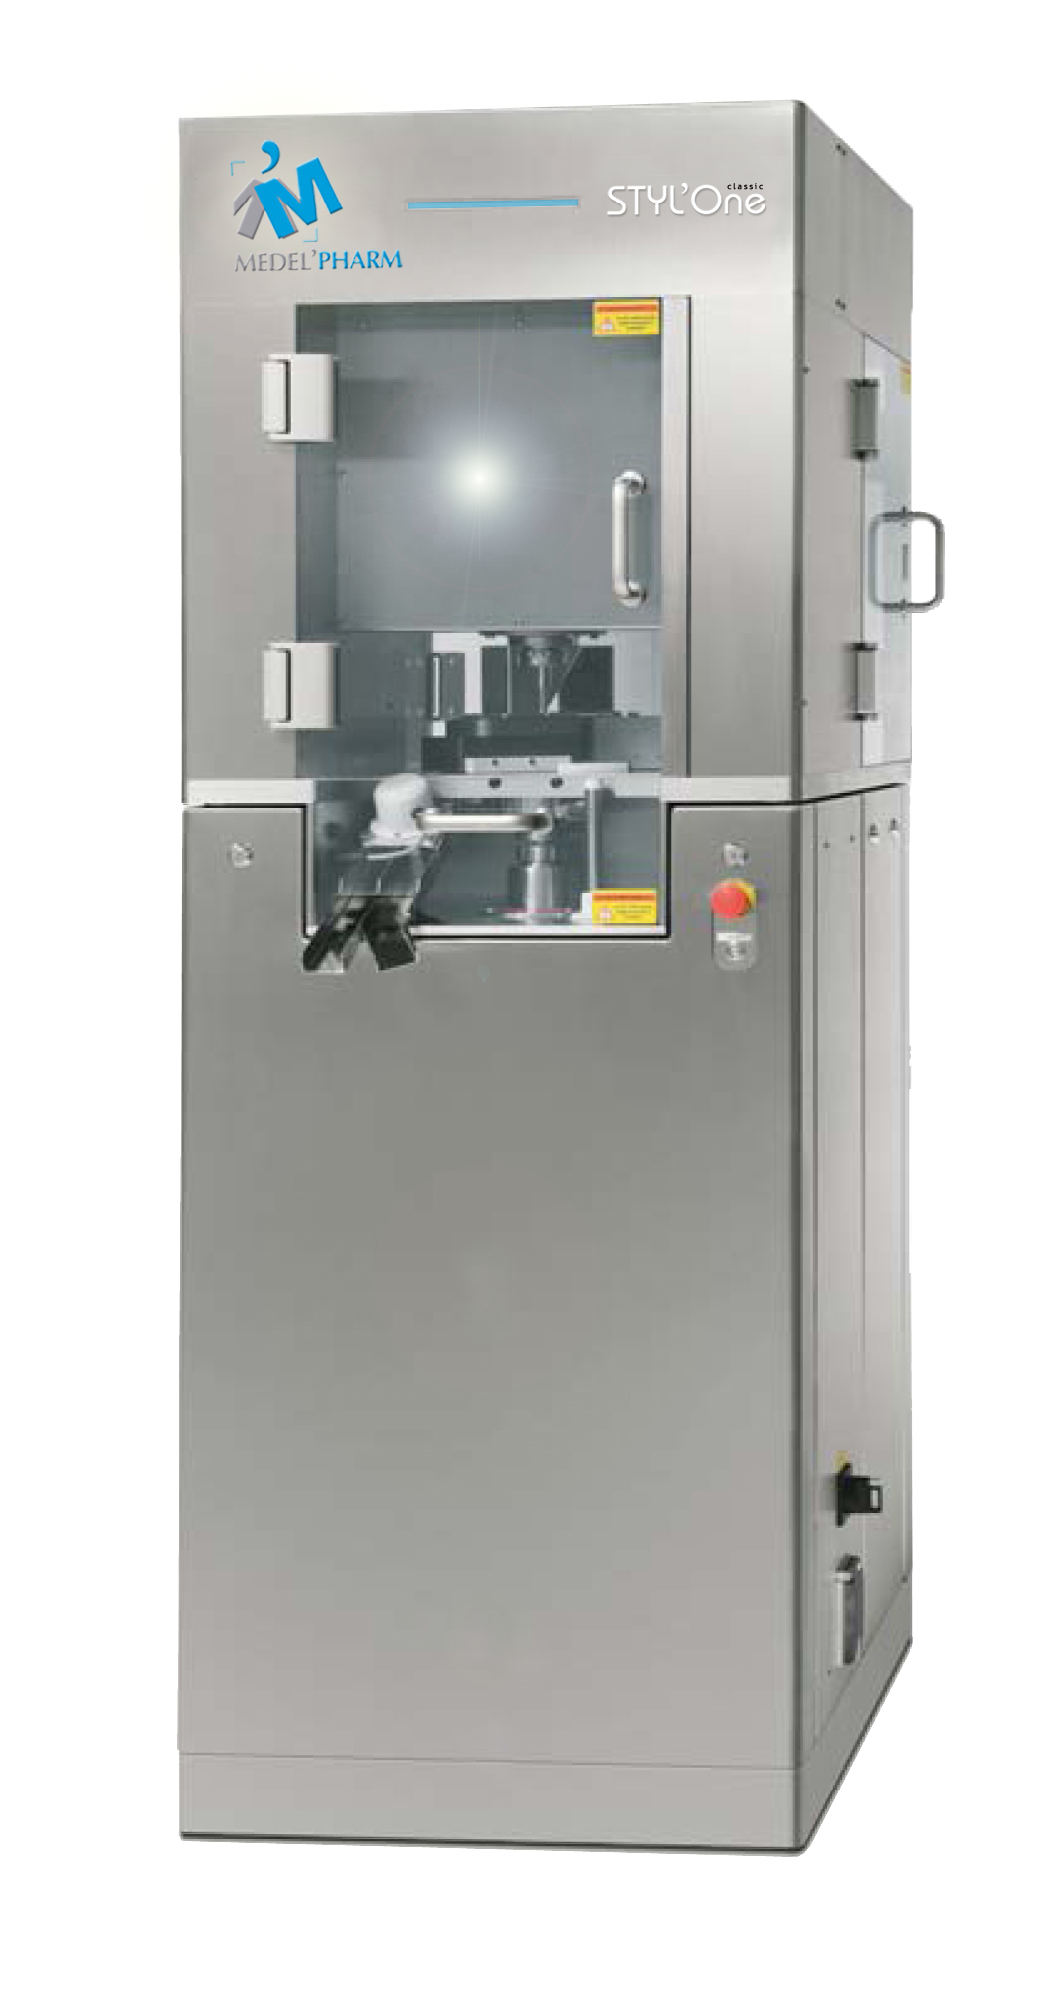 STYL'One Classic – R&D, Powder Characterization and Scale-up Tableting Machine